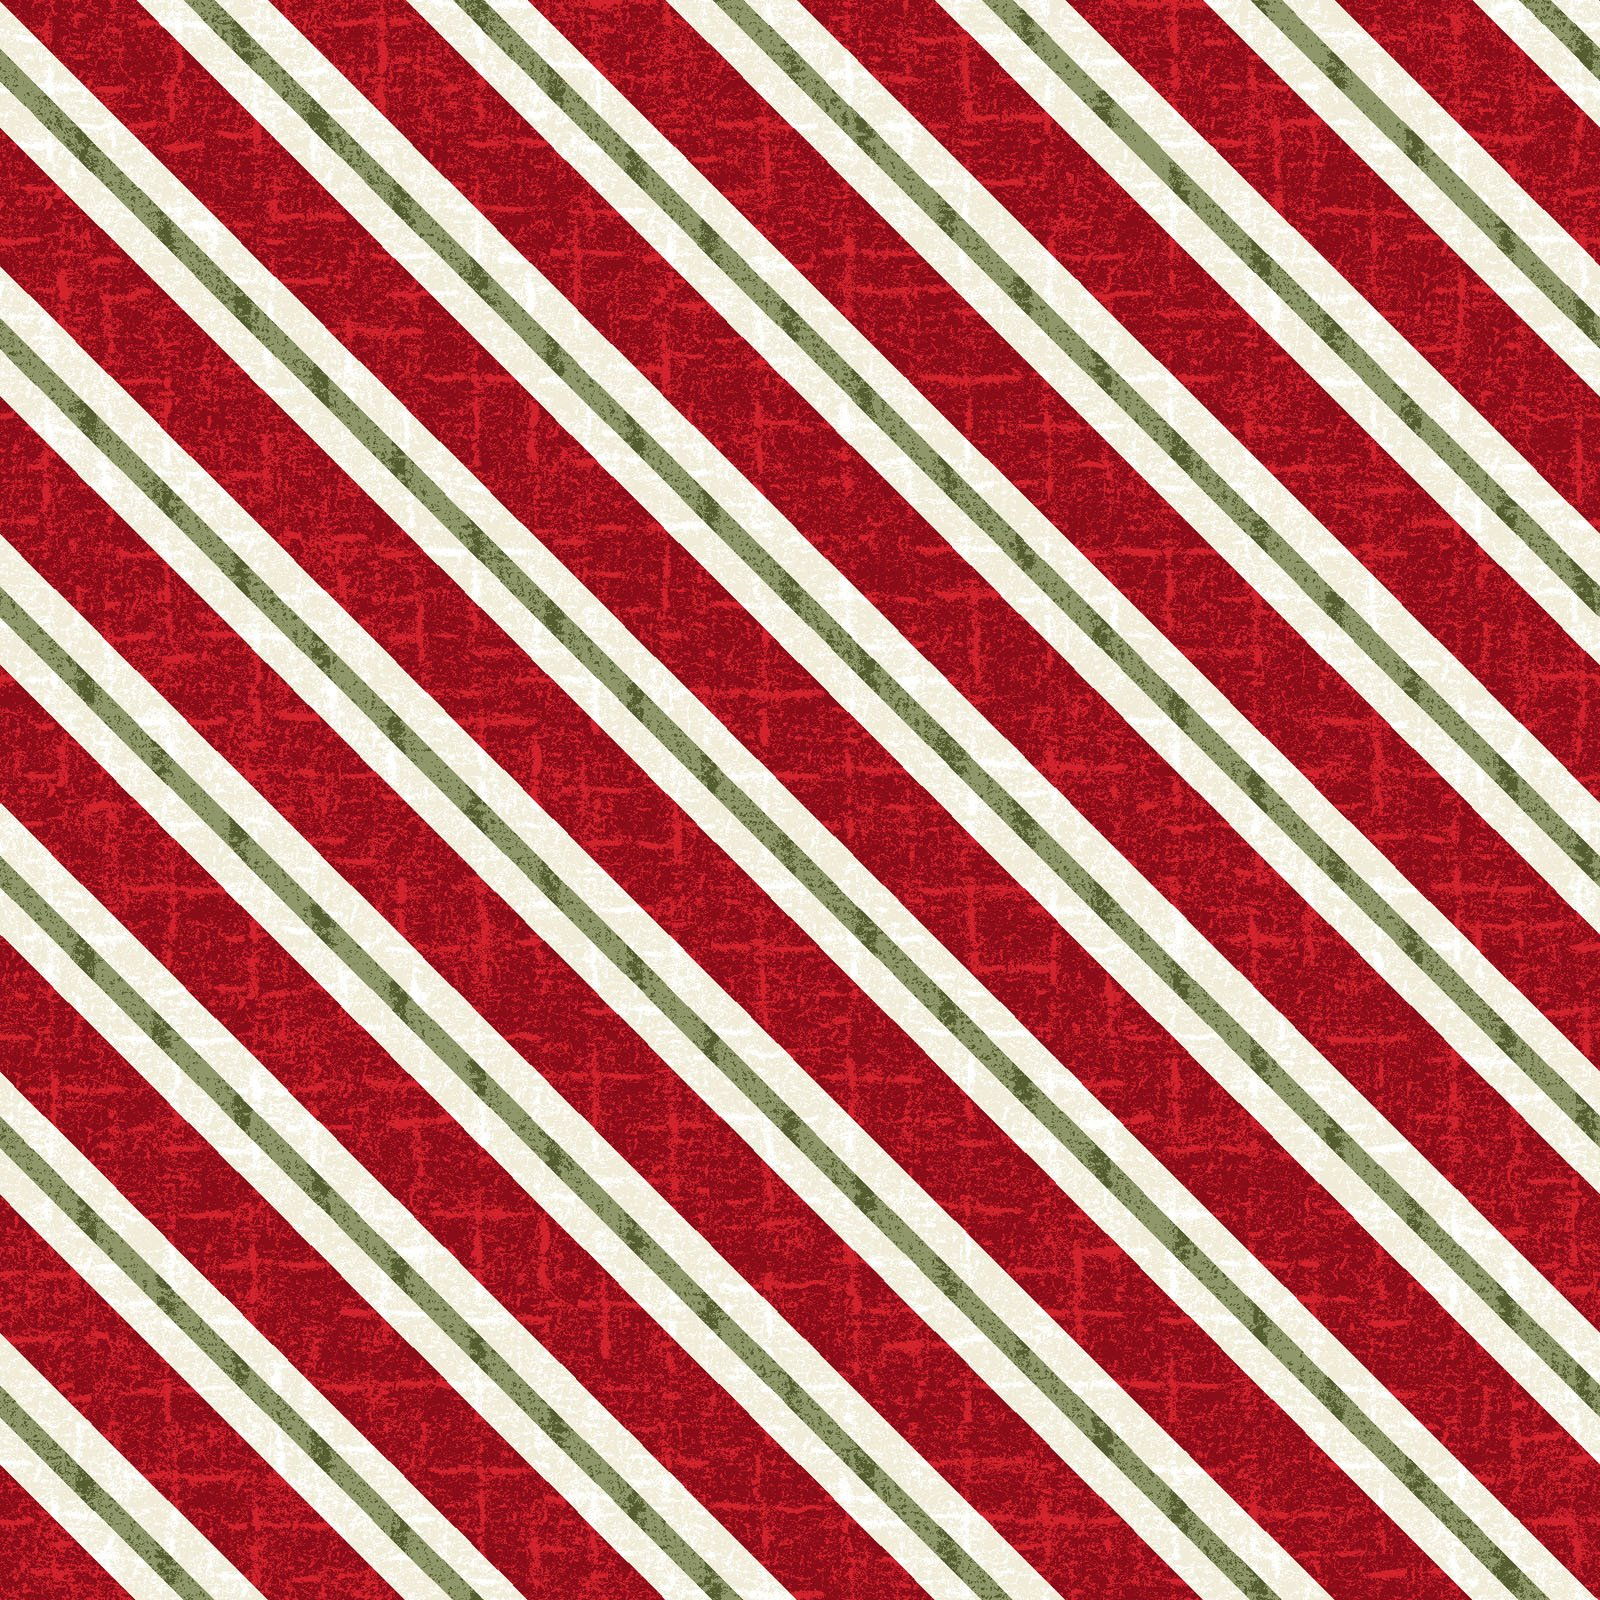 EESC-F9937 R - SNOWDAYS FLANNEL BY BONNIE SULLIVAN CANDY CANE STRIPE RED - ARRIVING IN AUGUST 2021